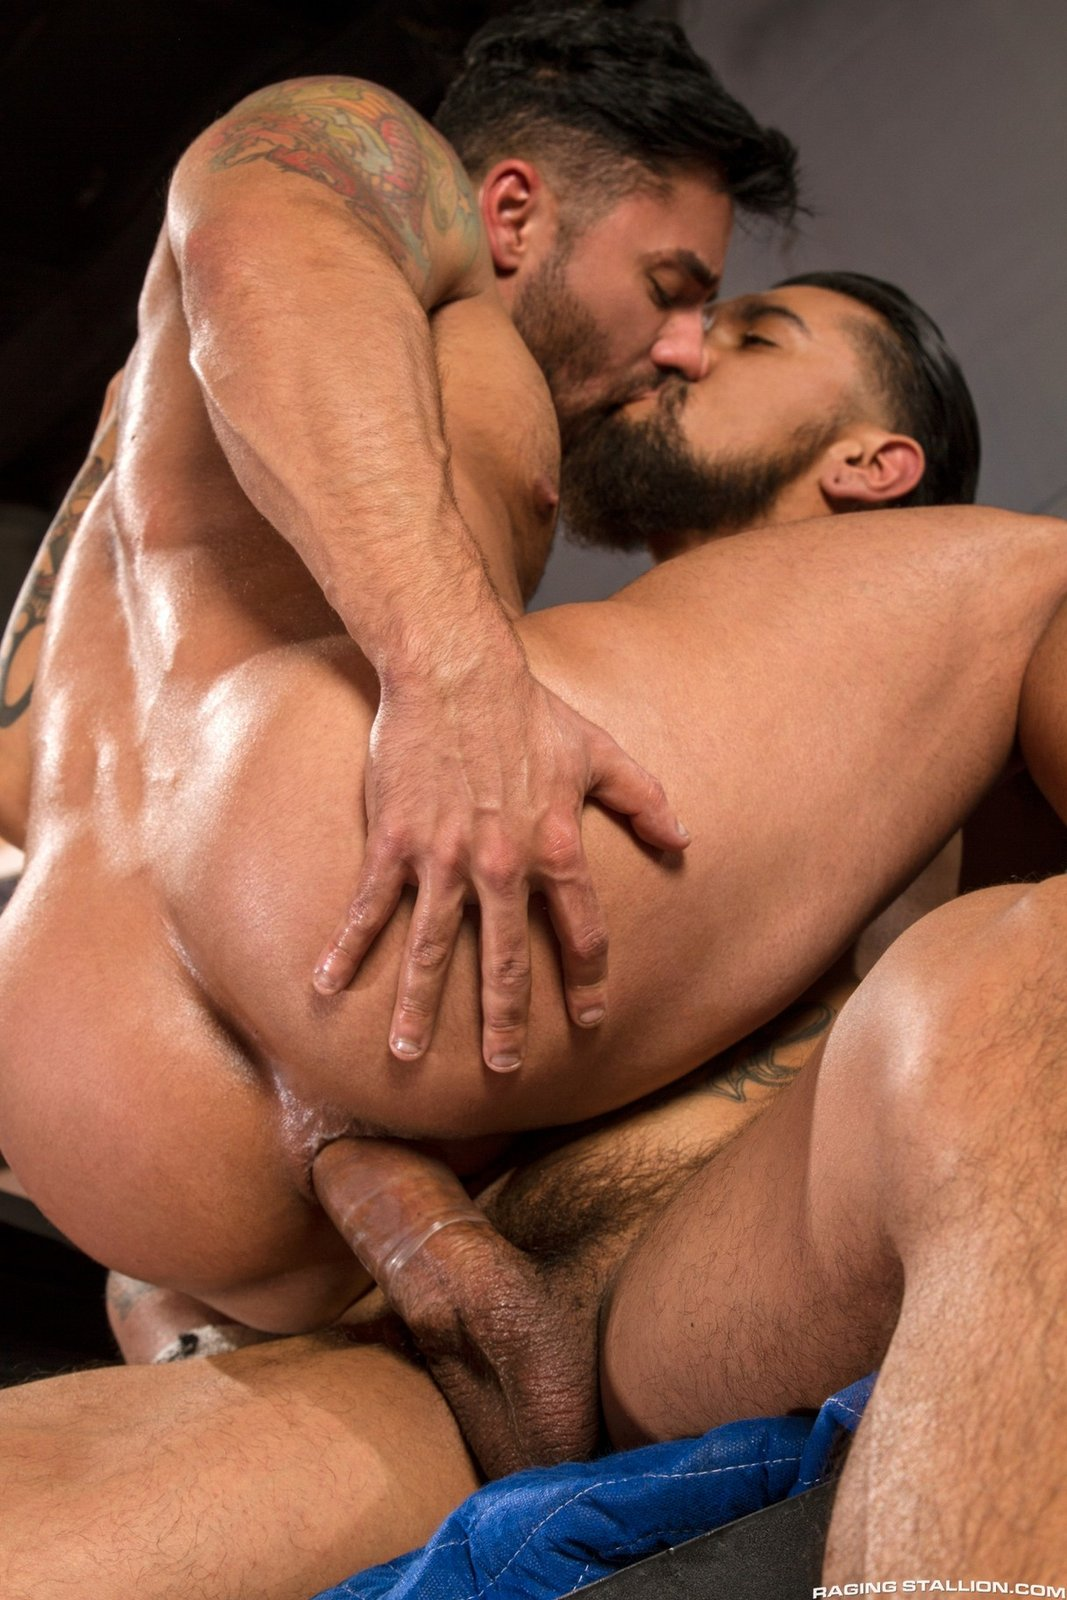 from Brice blog free porno gay